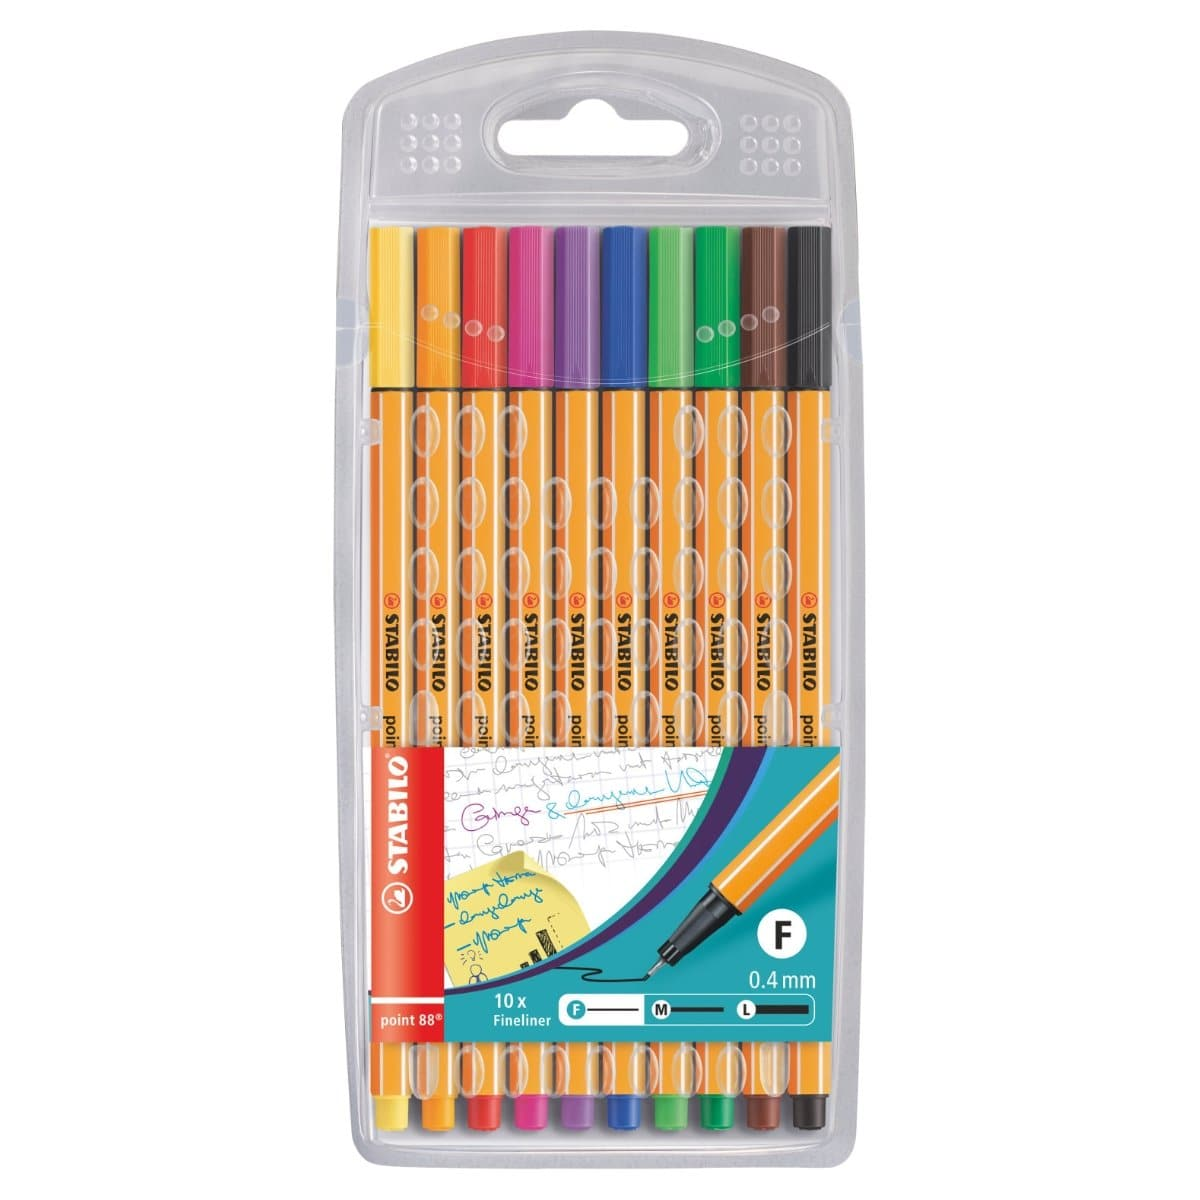 Stabilo Point 88 Fineliner, 0.4mm, 10/pack